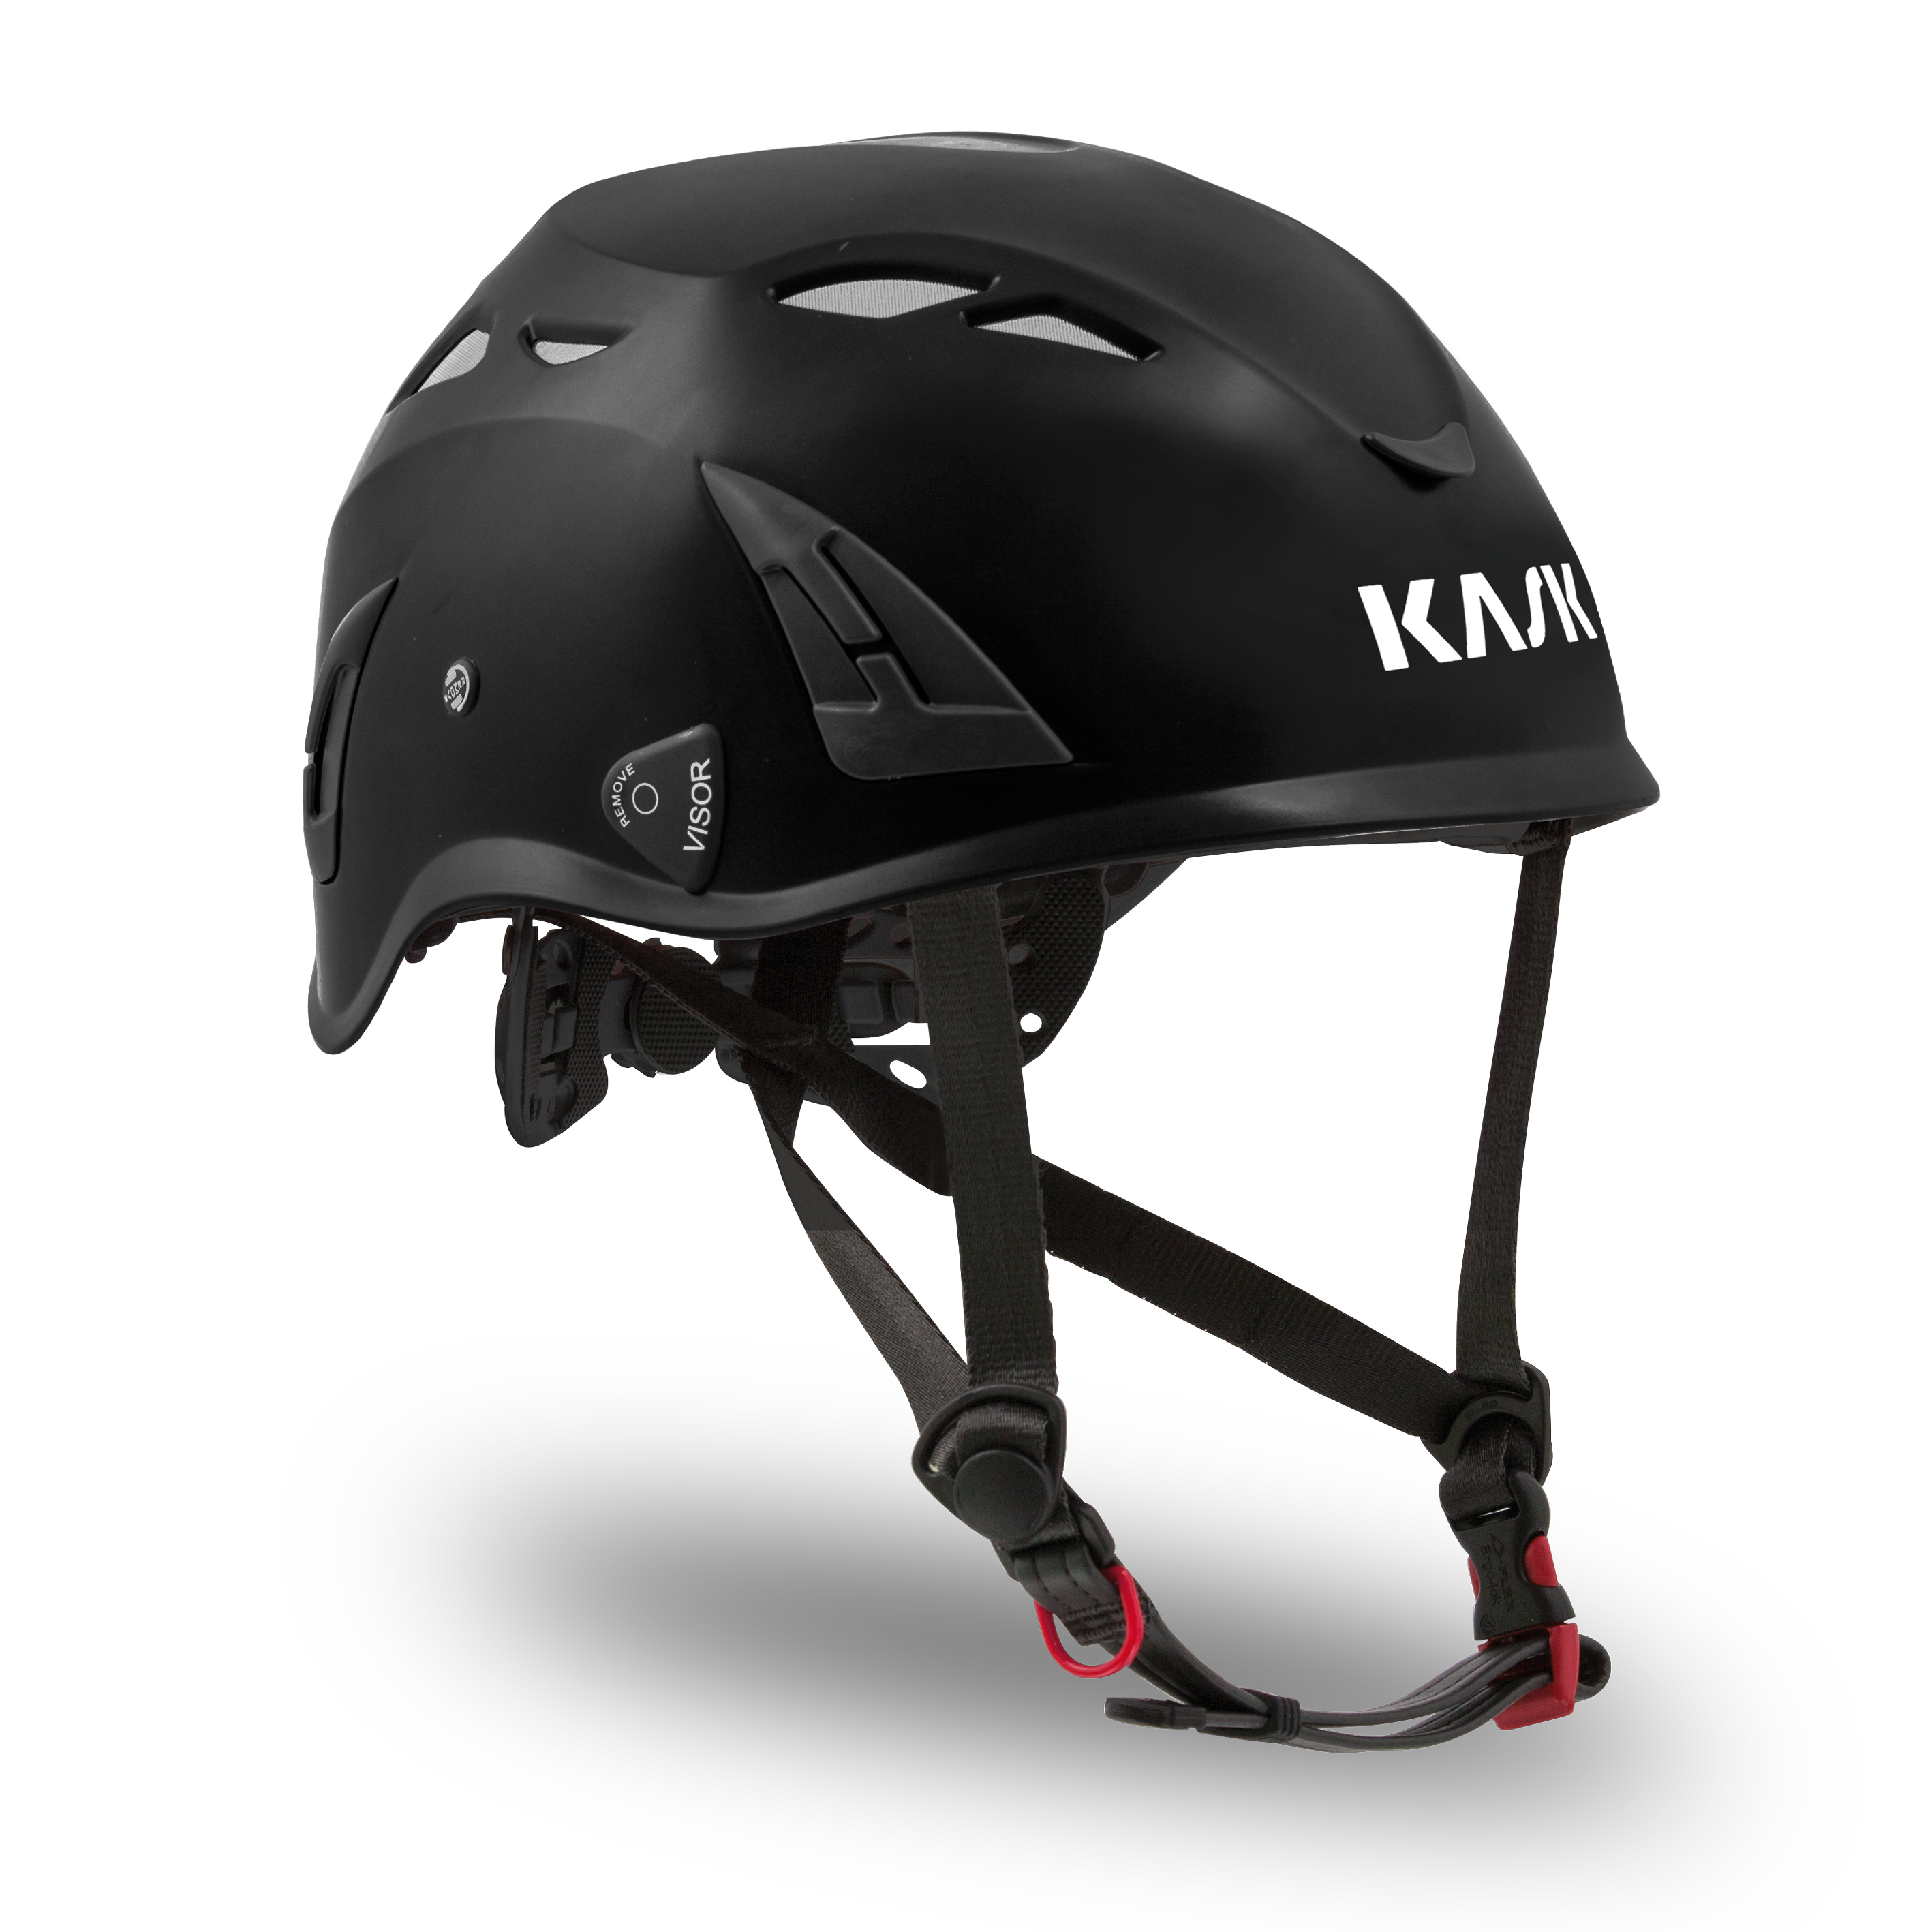 Kask Superplasma Helmet — Black KA-WHE00010.210